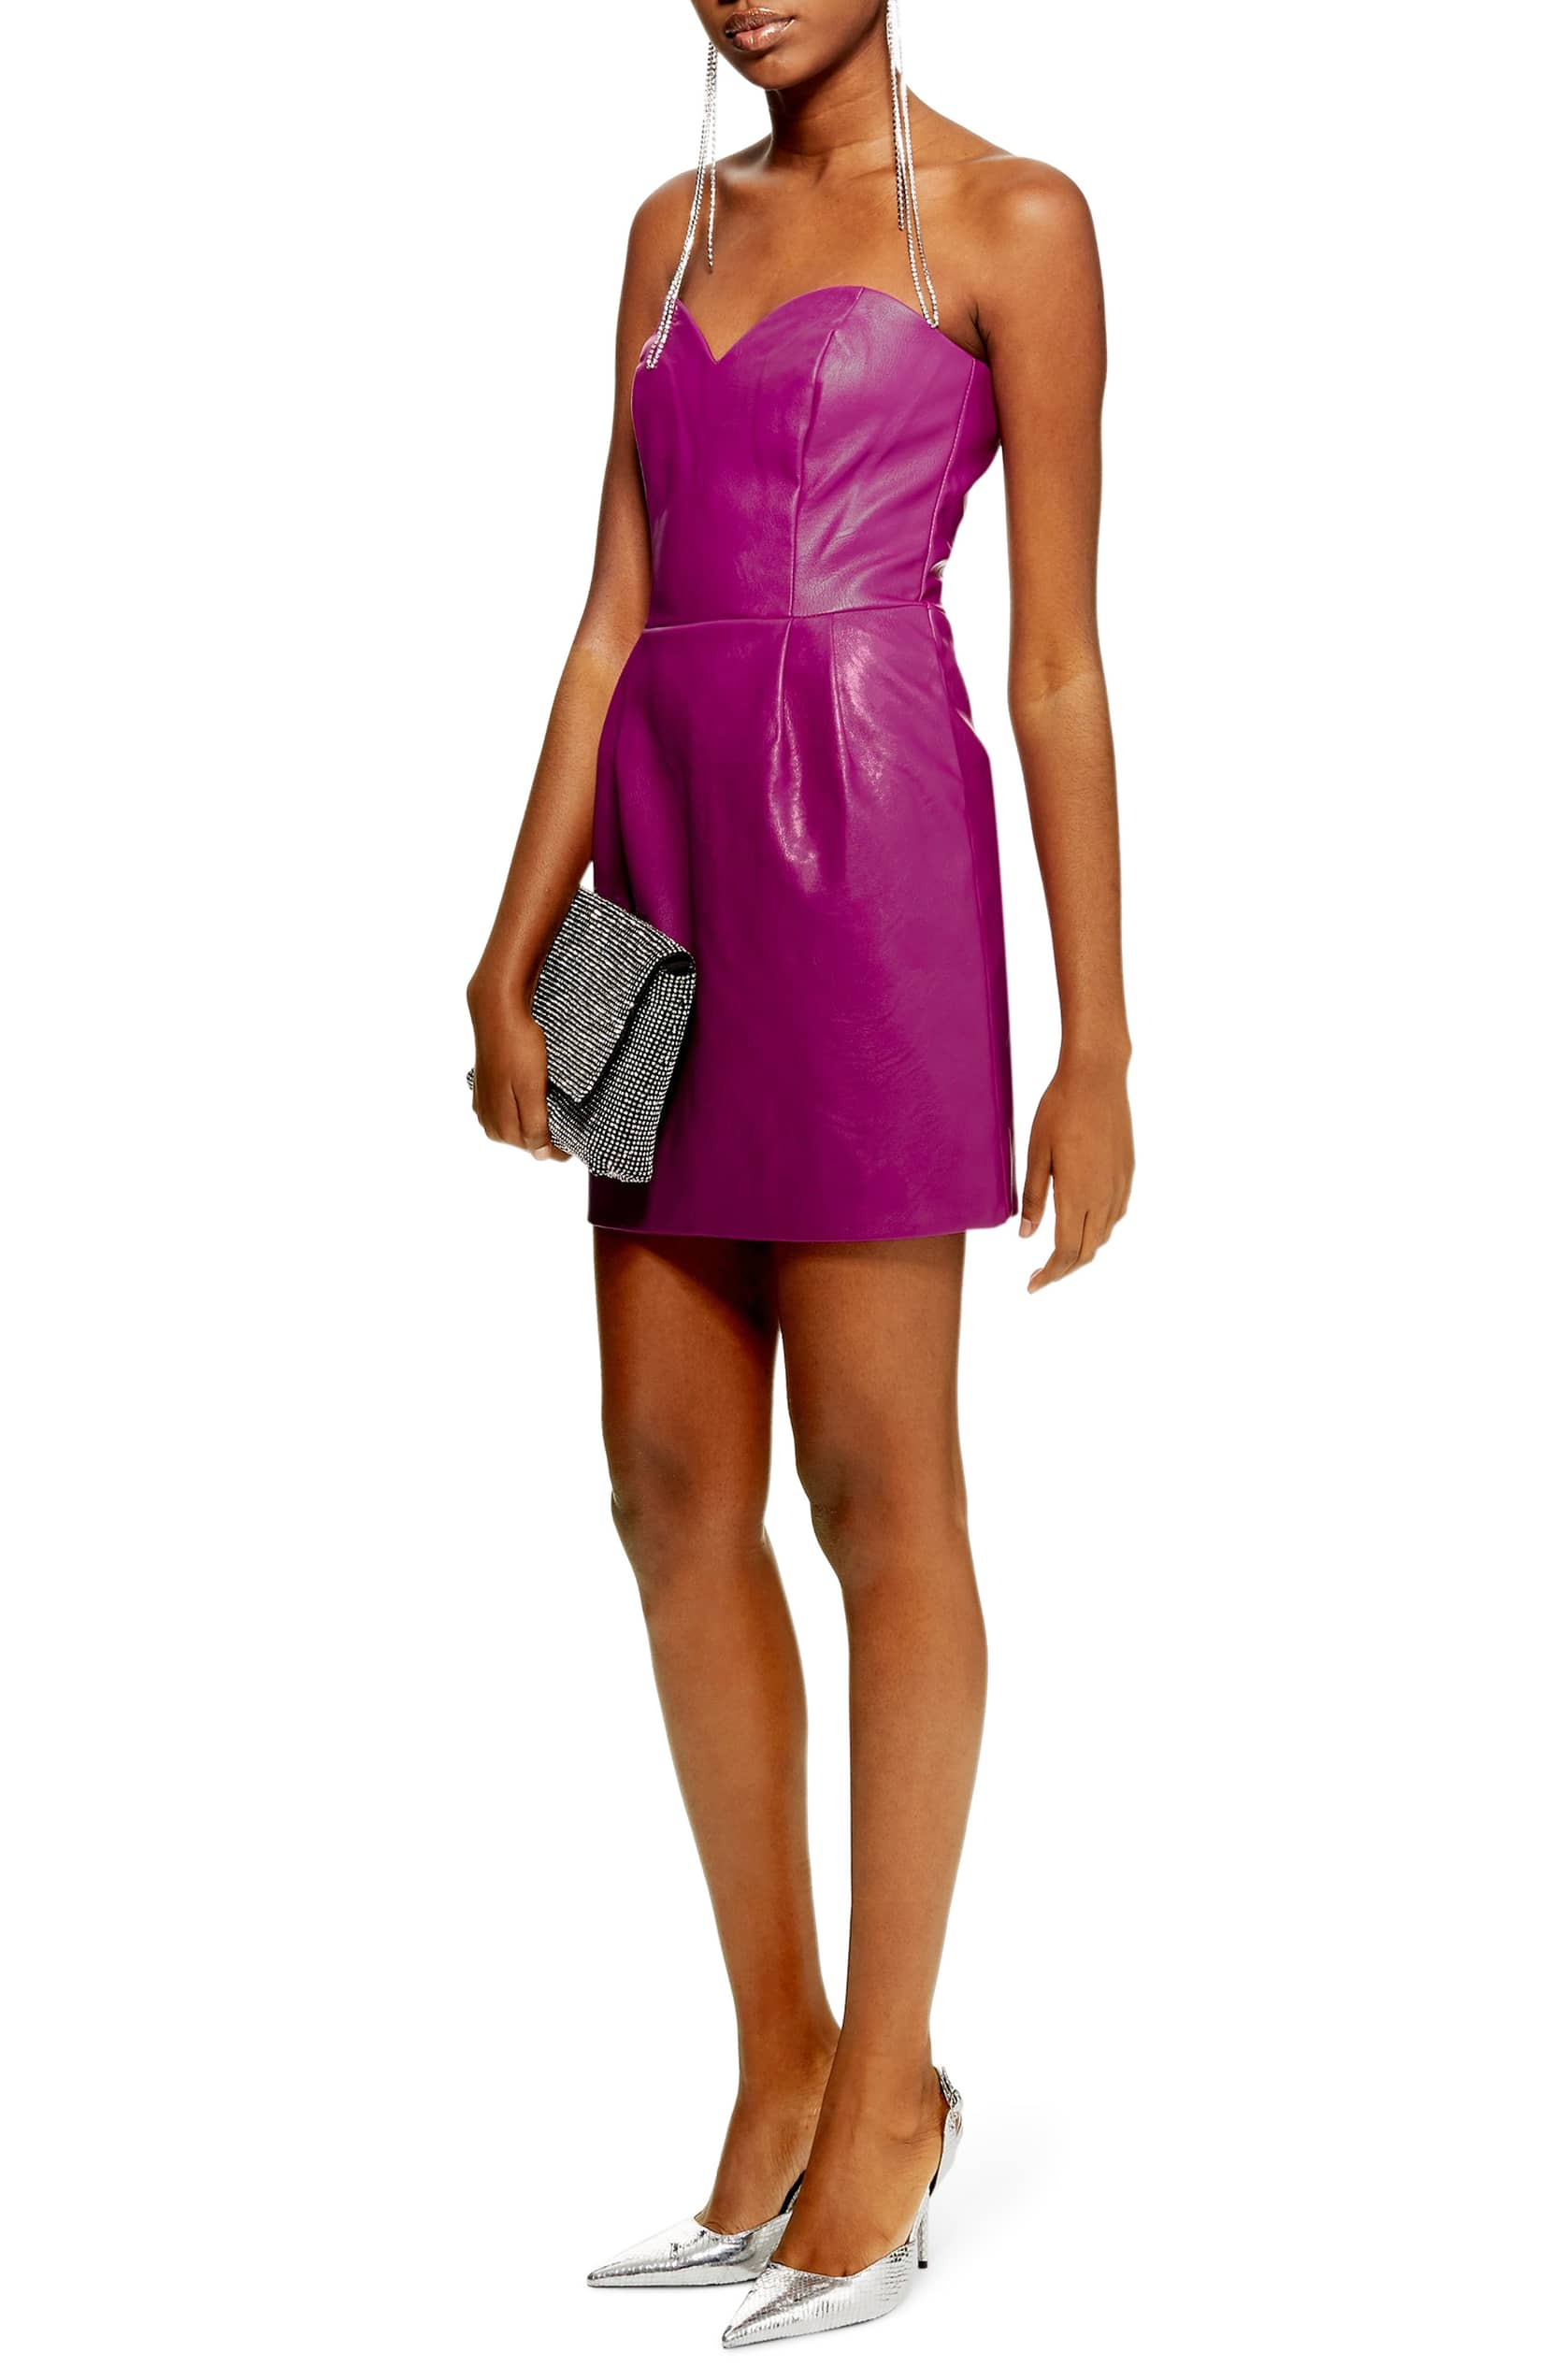 TOPSHOP Faux Leather Bandeau Mini Purple Dress